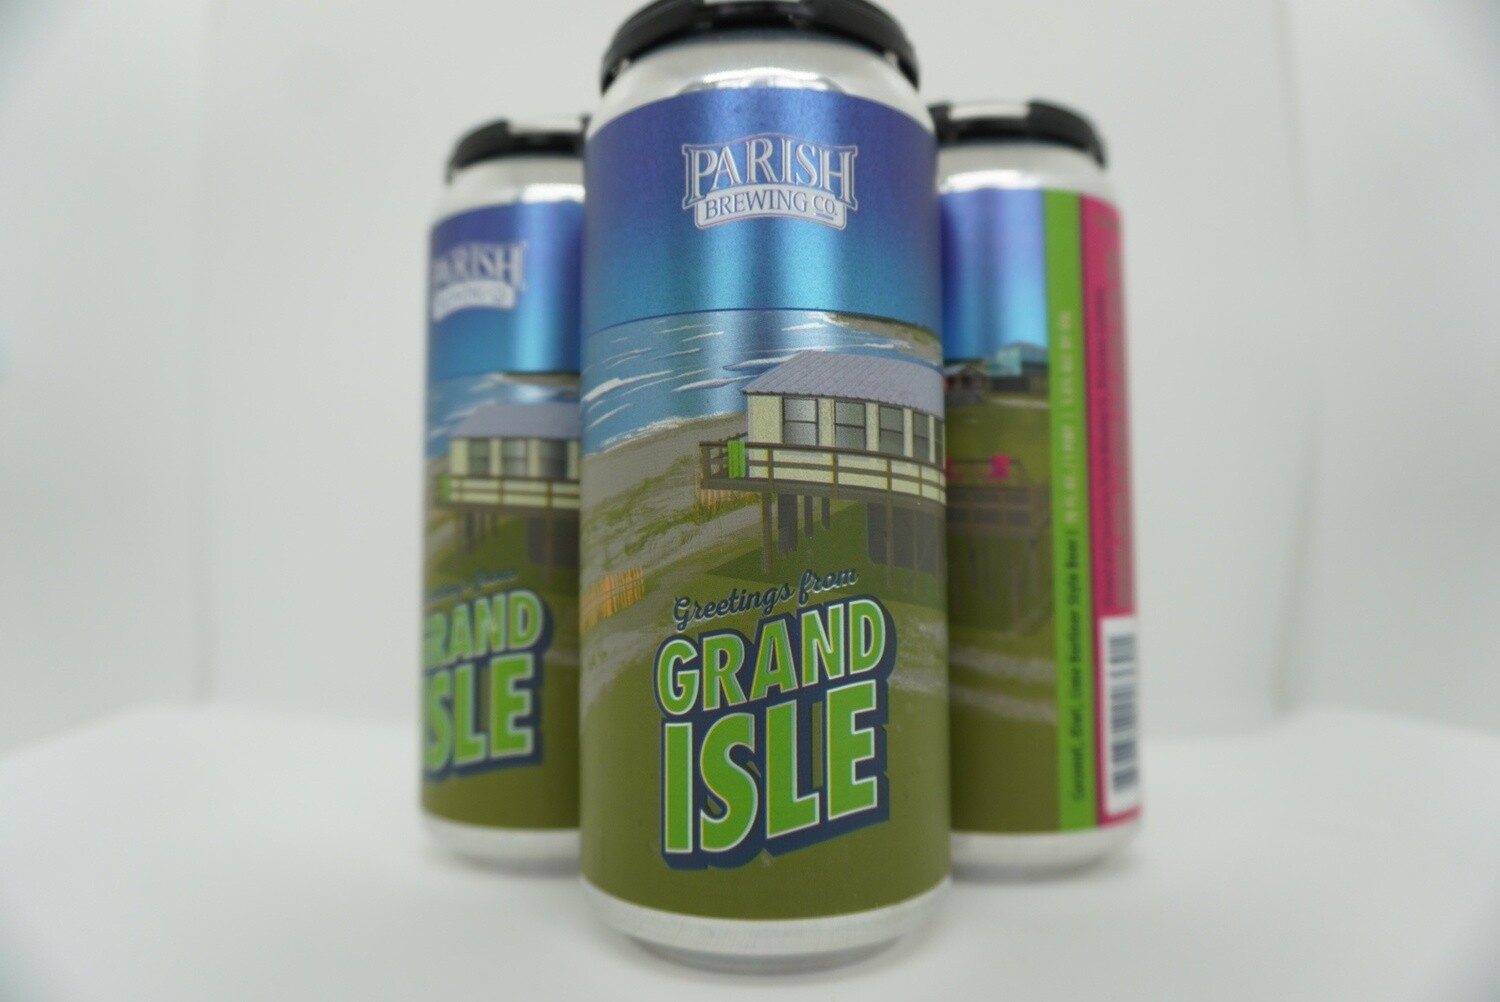 Parish - Greetings From Grand Isle - Sour - 5.6% ABV - 4 Pack